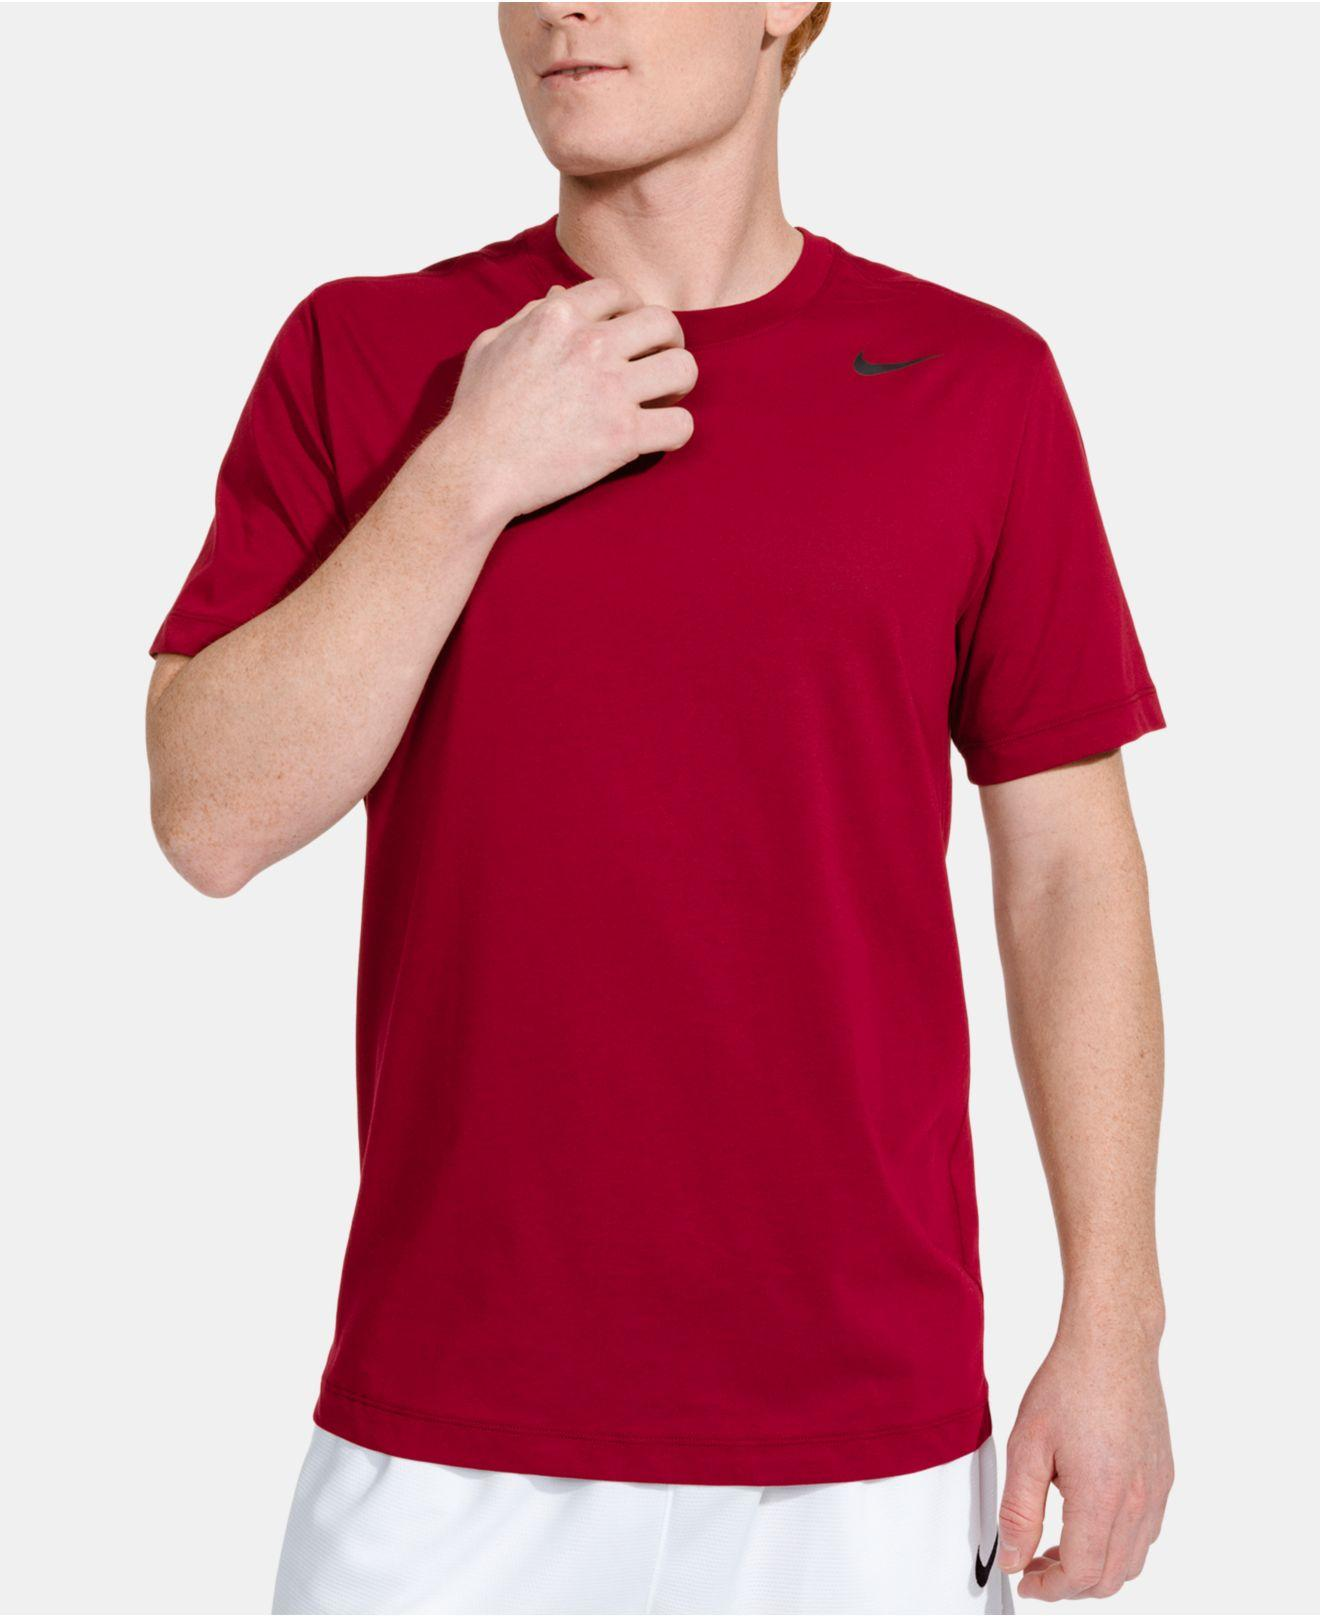 dccf04877 Lyst - Nike Dri-fit Training T-shirt in Red for Men